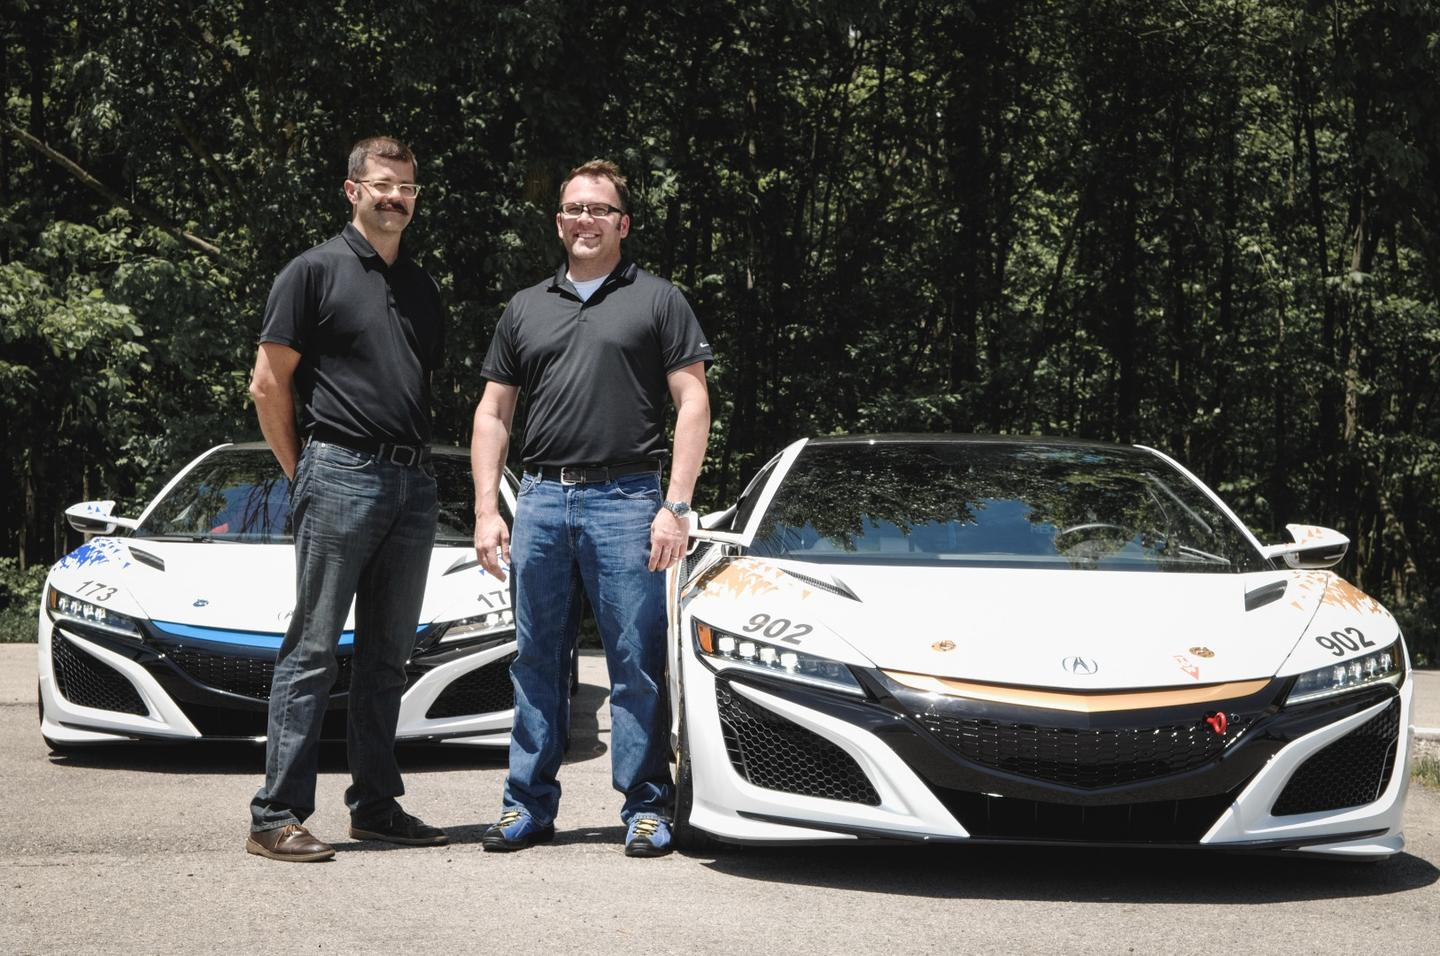 James and Nick Robinson will drive the hybrid NSXs up Pikes Peak